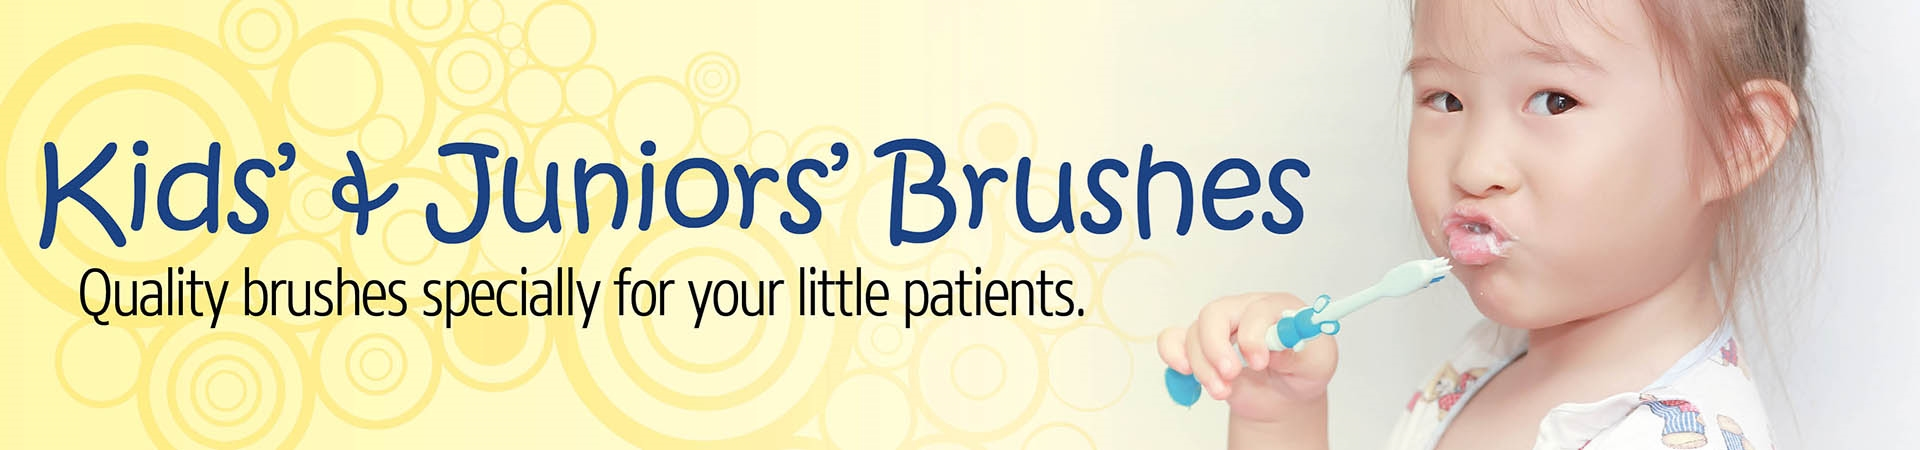 kids bulk toothbrushes for professional use